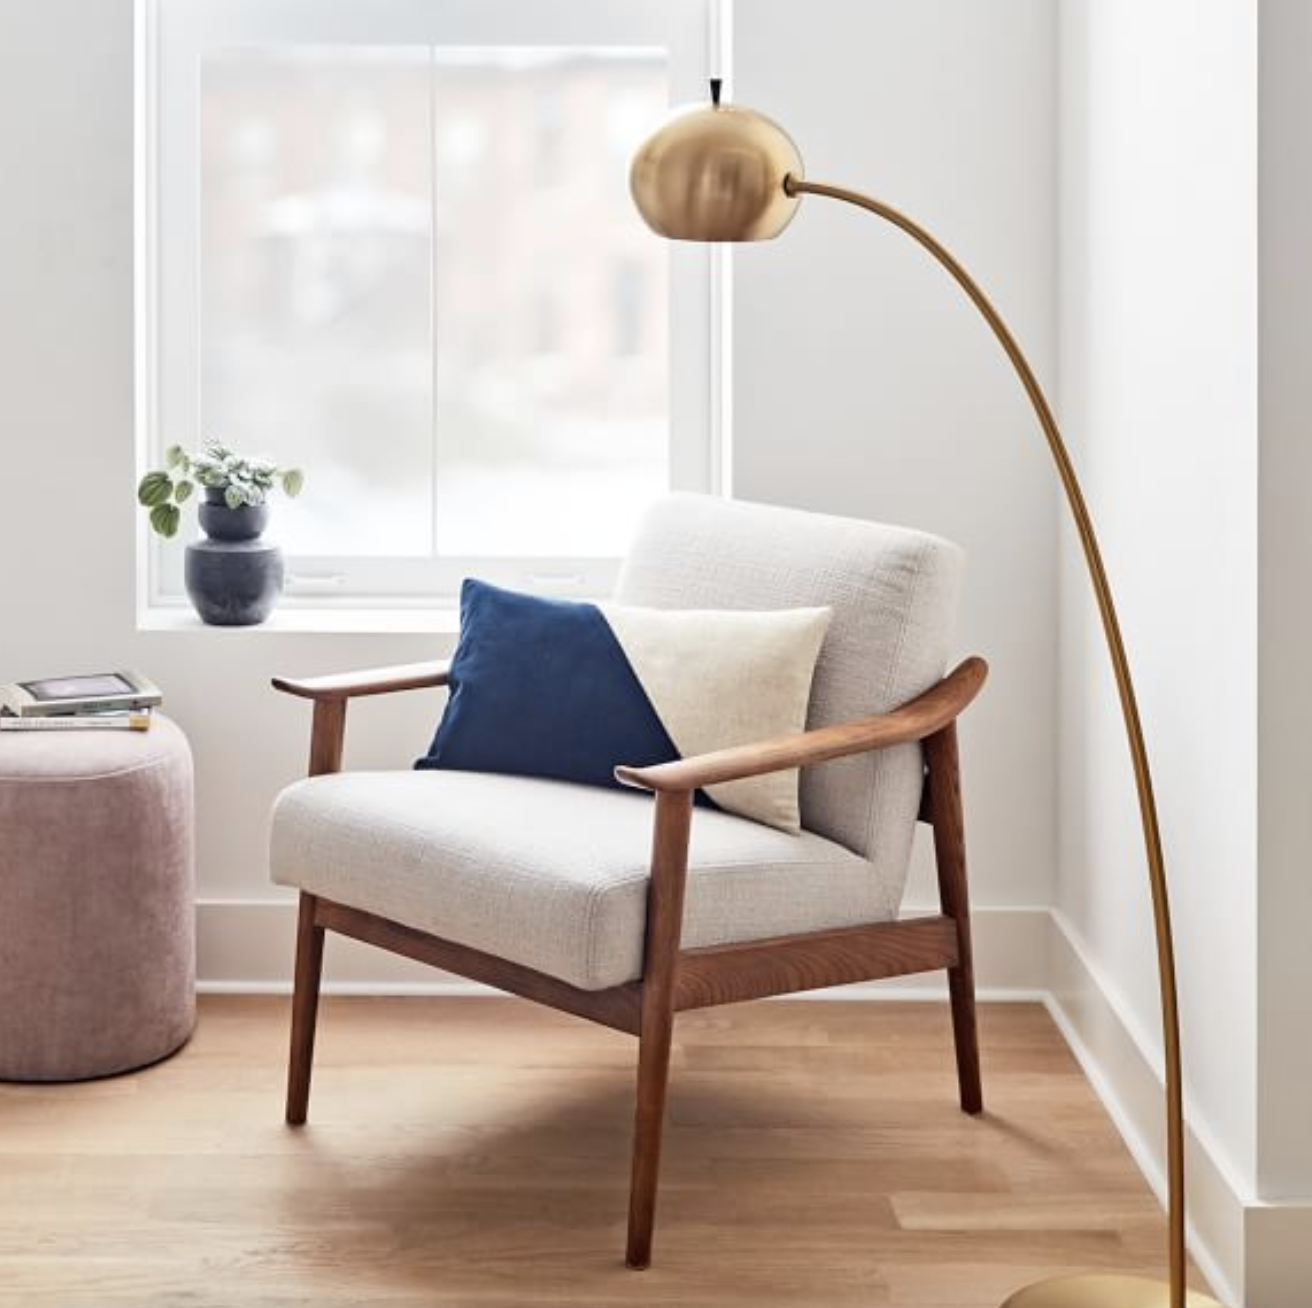 mid-century wood chair with white upholstery